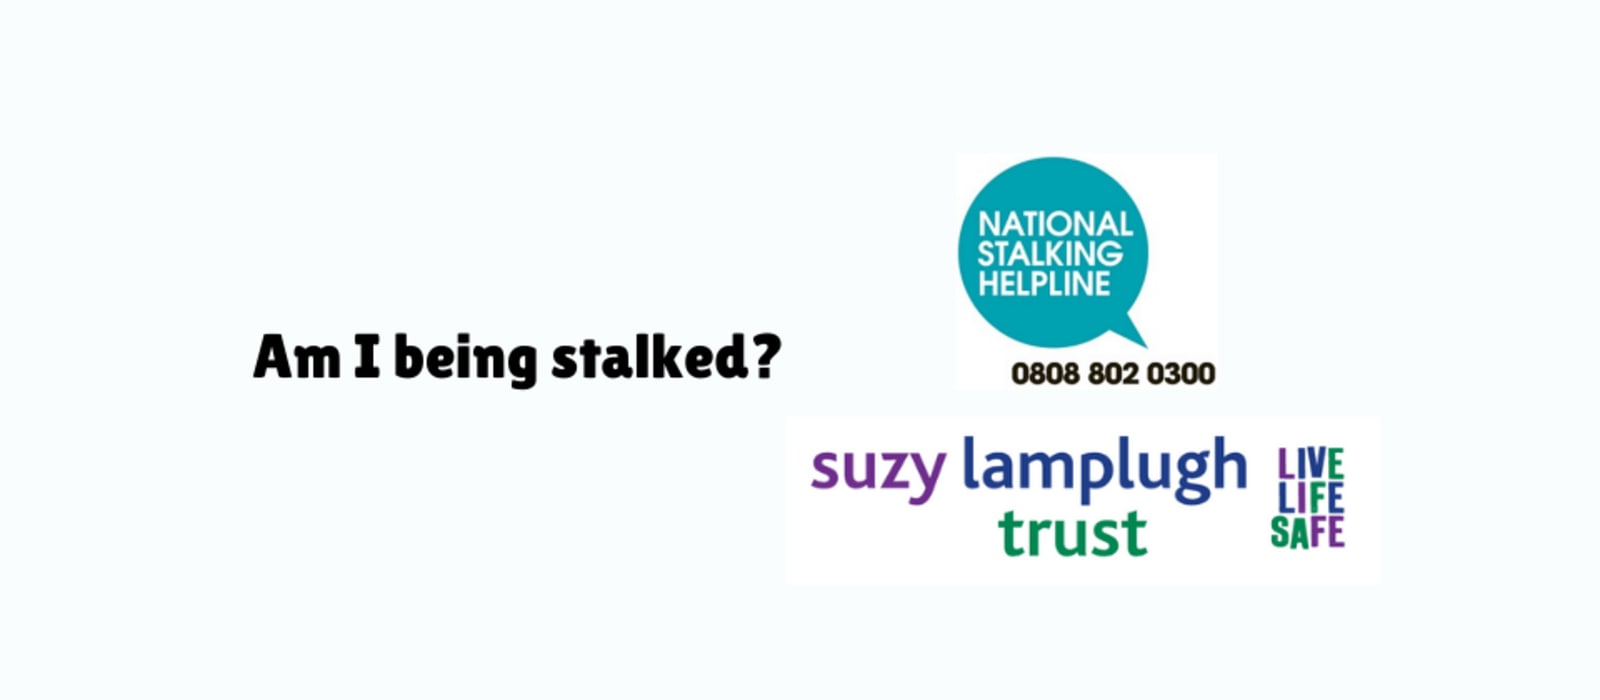 Suzy Lamplugh Trust launches online platform for victims of stalking